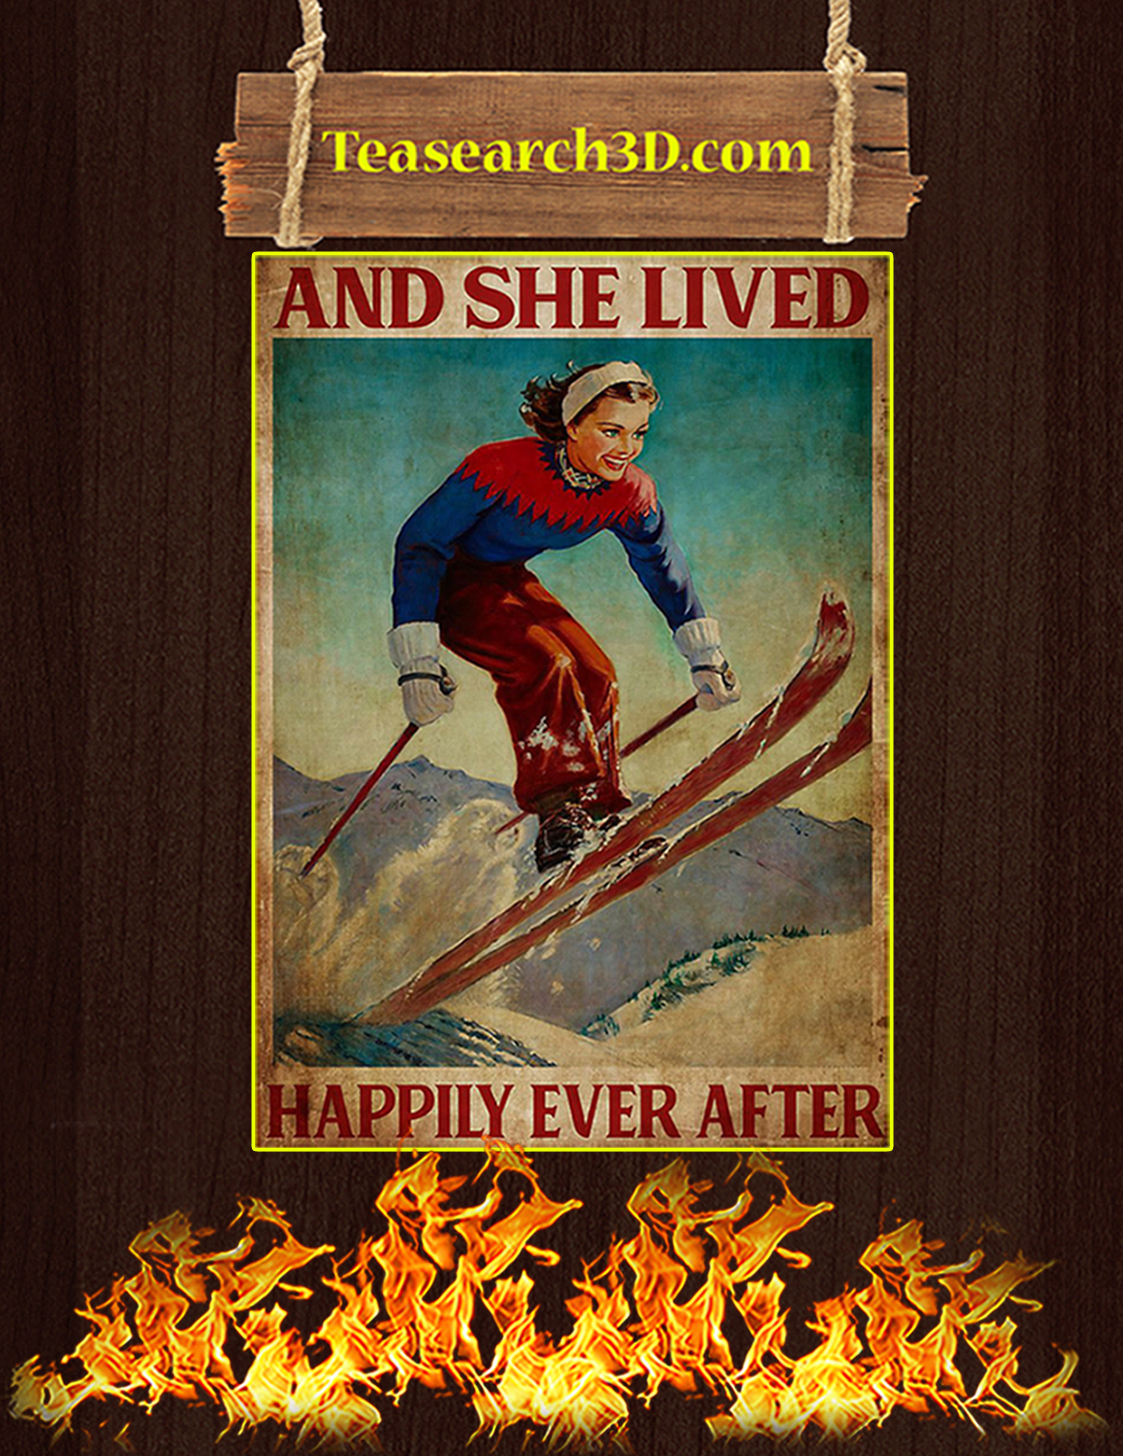 Skiing and she lived happily ever after poster A3